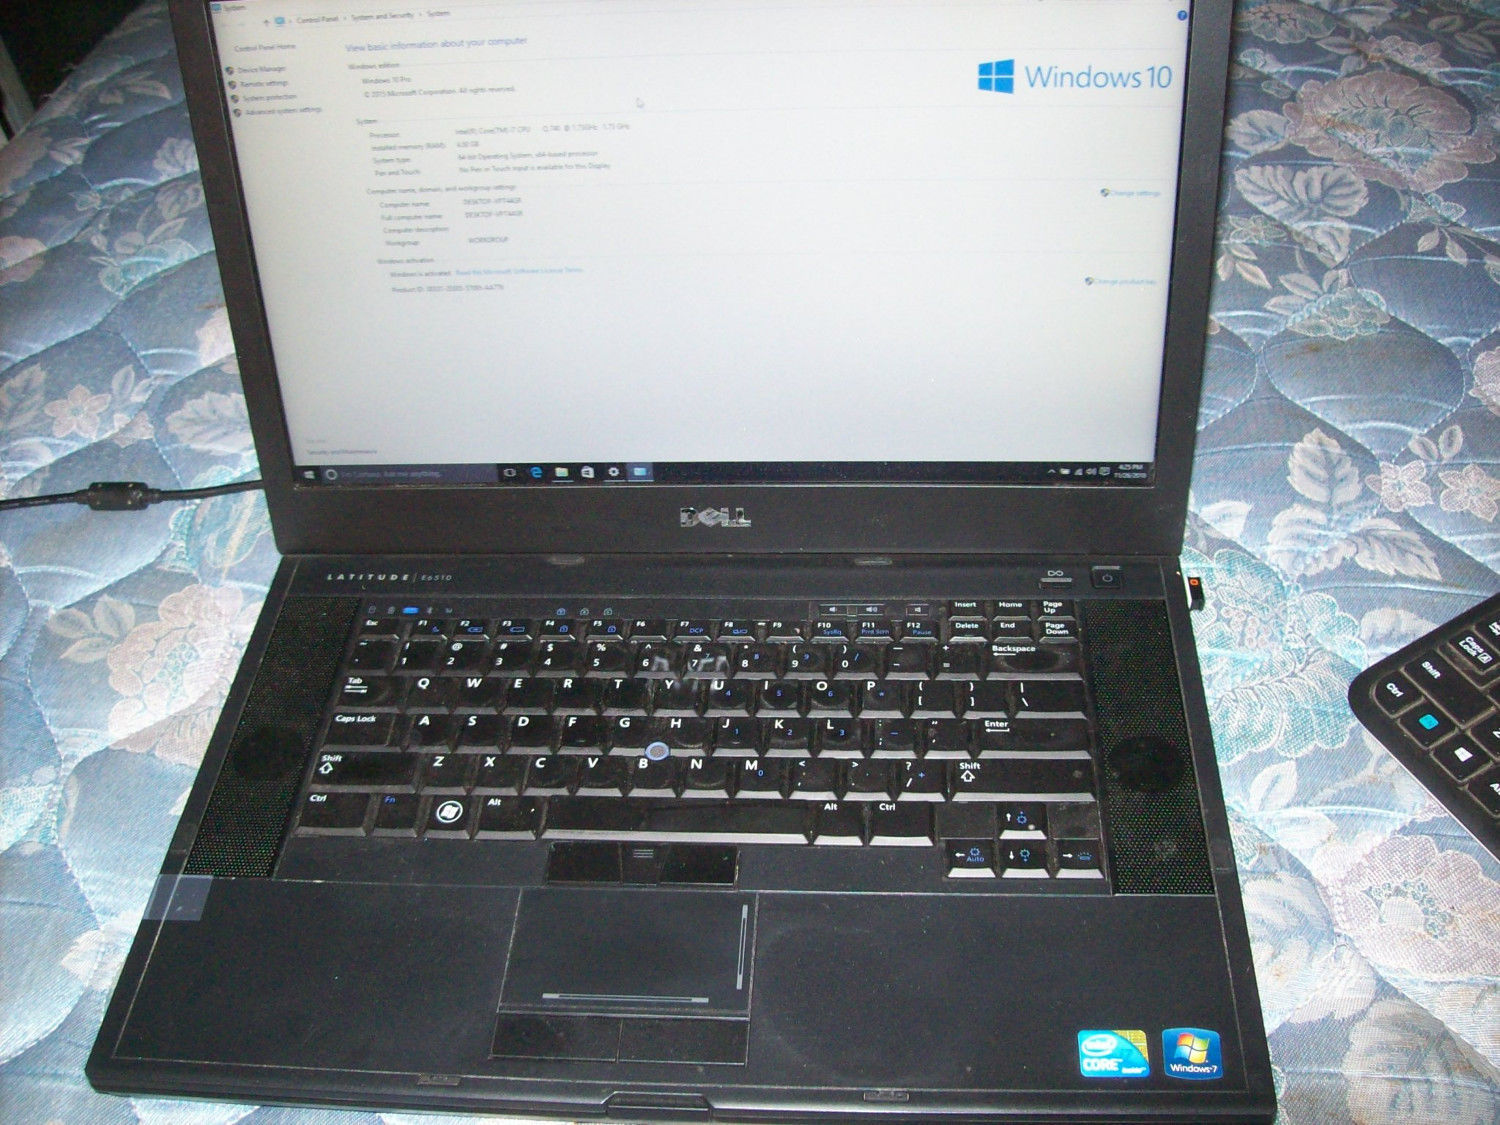 Dell Latitude E6510 Laptop i7 1.73 4GB RAM 500GB HD NVIDIA Win10 PRO 64 Bit